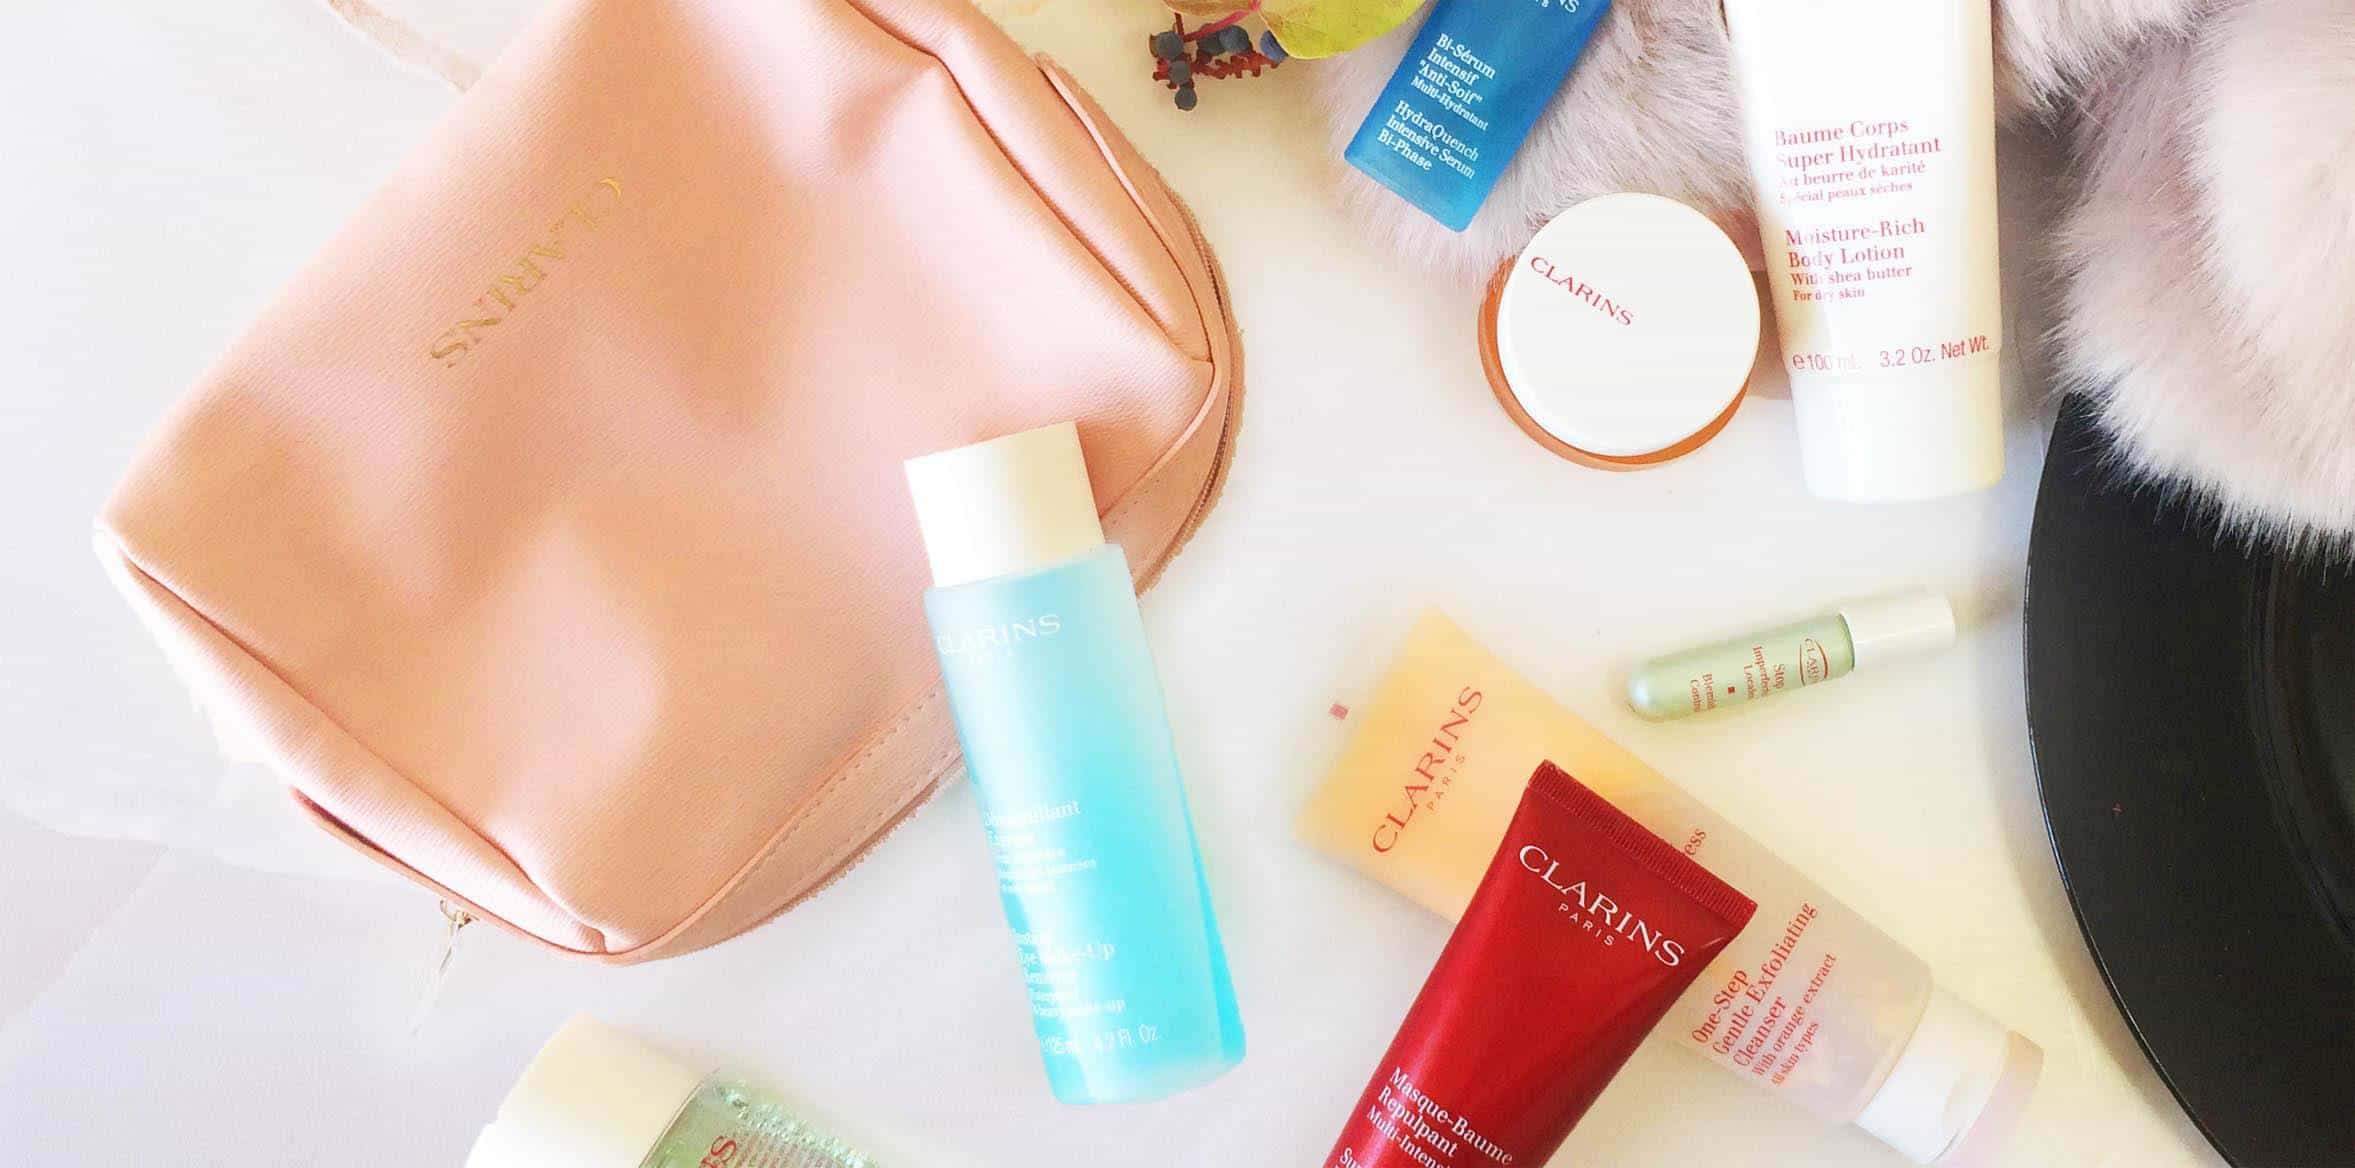 Clarins skin care reviews